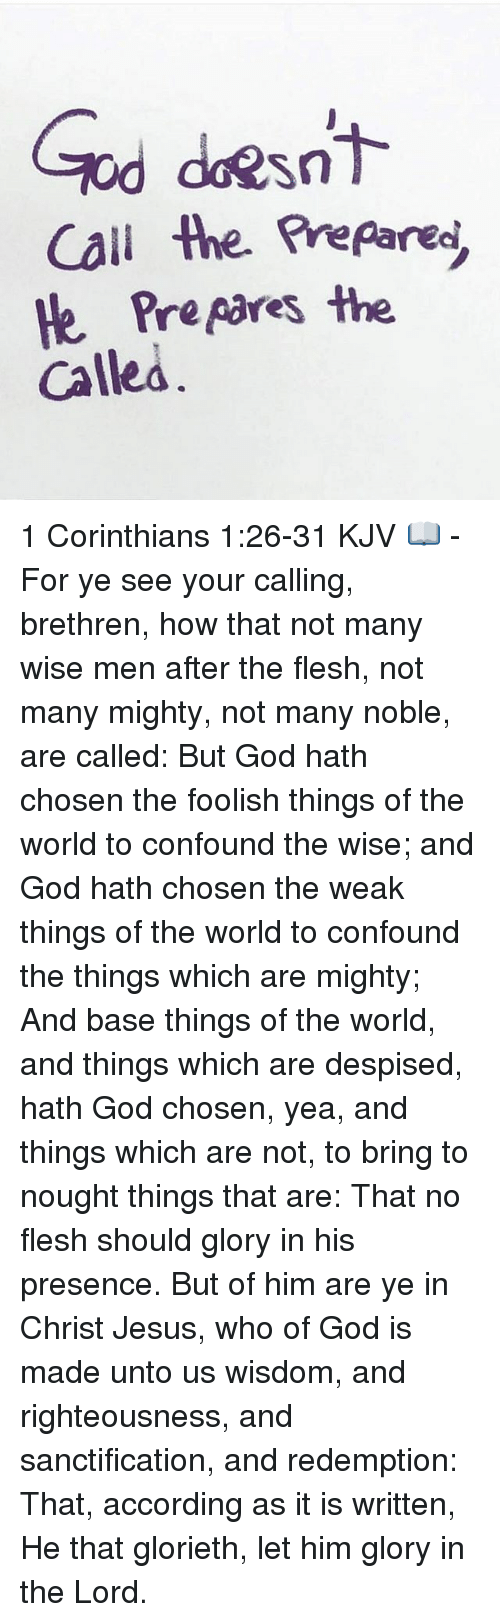 Righteousness: Sn  Call then prepared,  He prepares the  Called 1 Corinthians 1:26-31 KJV 📖 - For ye see your calling, brethren, how that not many wise men after the flesh, not many mighty, not many noble, are called: But God hath chosen the foolish things of the world to confound the wise; and God hath chosen the weak things of the world to confound the things which are mighty; And base things of the world, and things which are despised, hath God chosen, yea, and things which are not, to bring to nought things that are: That no flesh should glory in his presence. But of him are ye in Christ Jesus, who of God is made unto us wisdom, and righteousness, and sanctification, and redemption: That, according as it is written, He that glorieth, let him glory in the Lord.